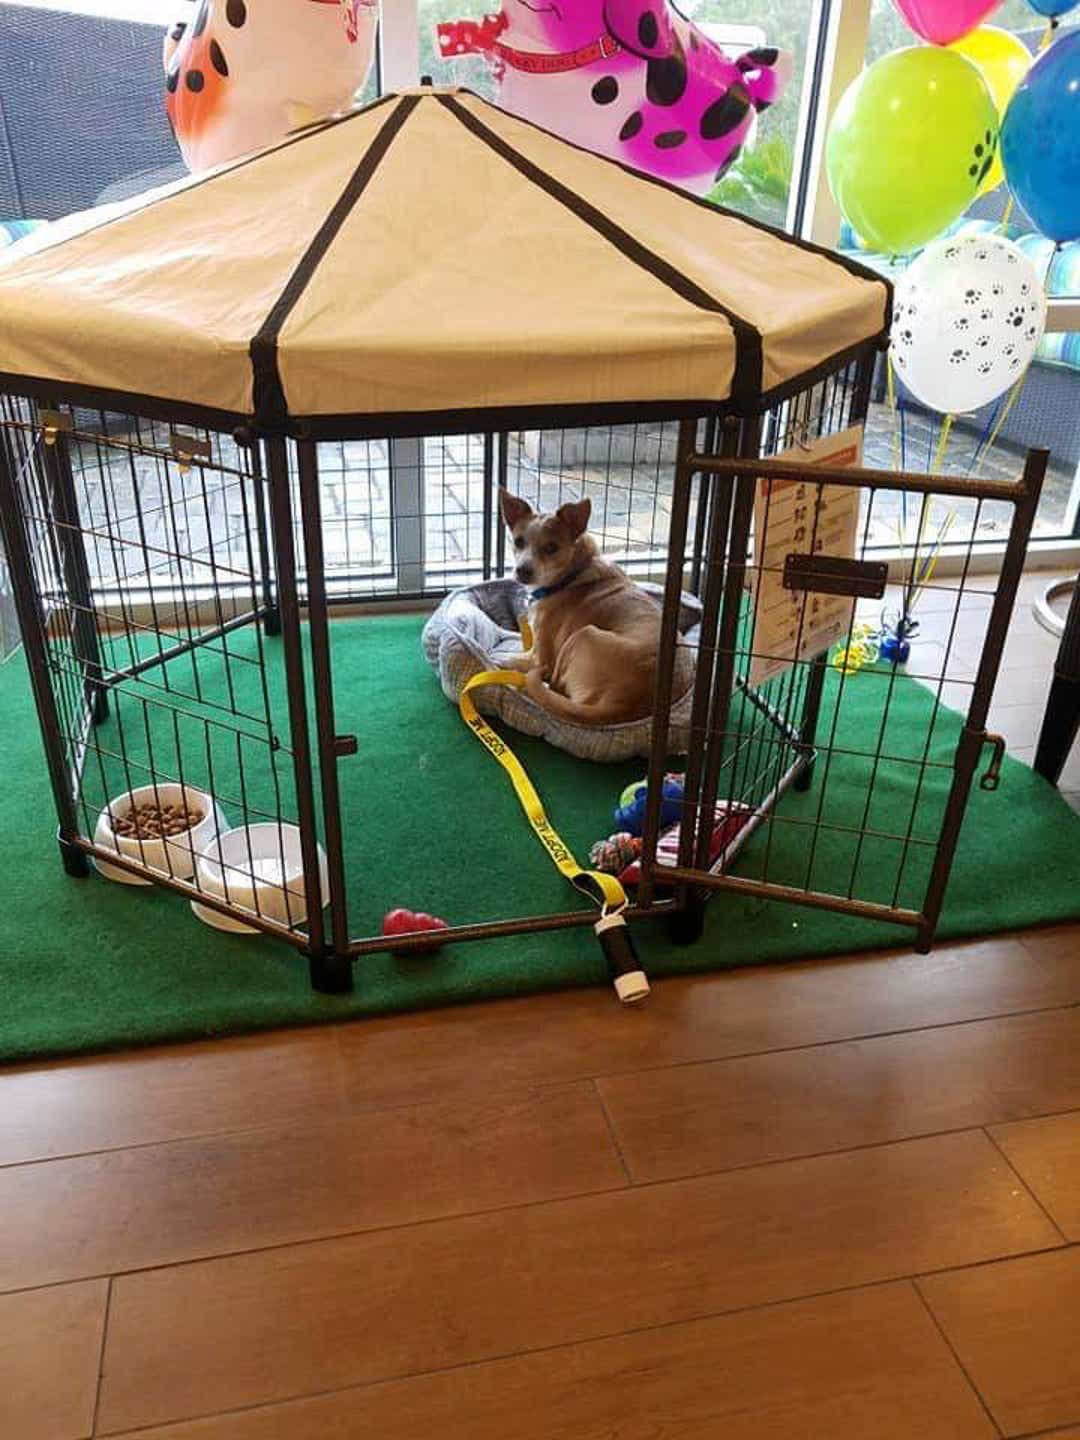 this-hotel-lets-its-guests-foster-dogs-during-their-stay-and-adopt-them-once-they-leave-02